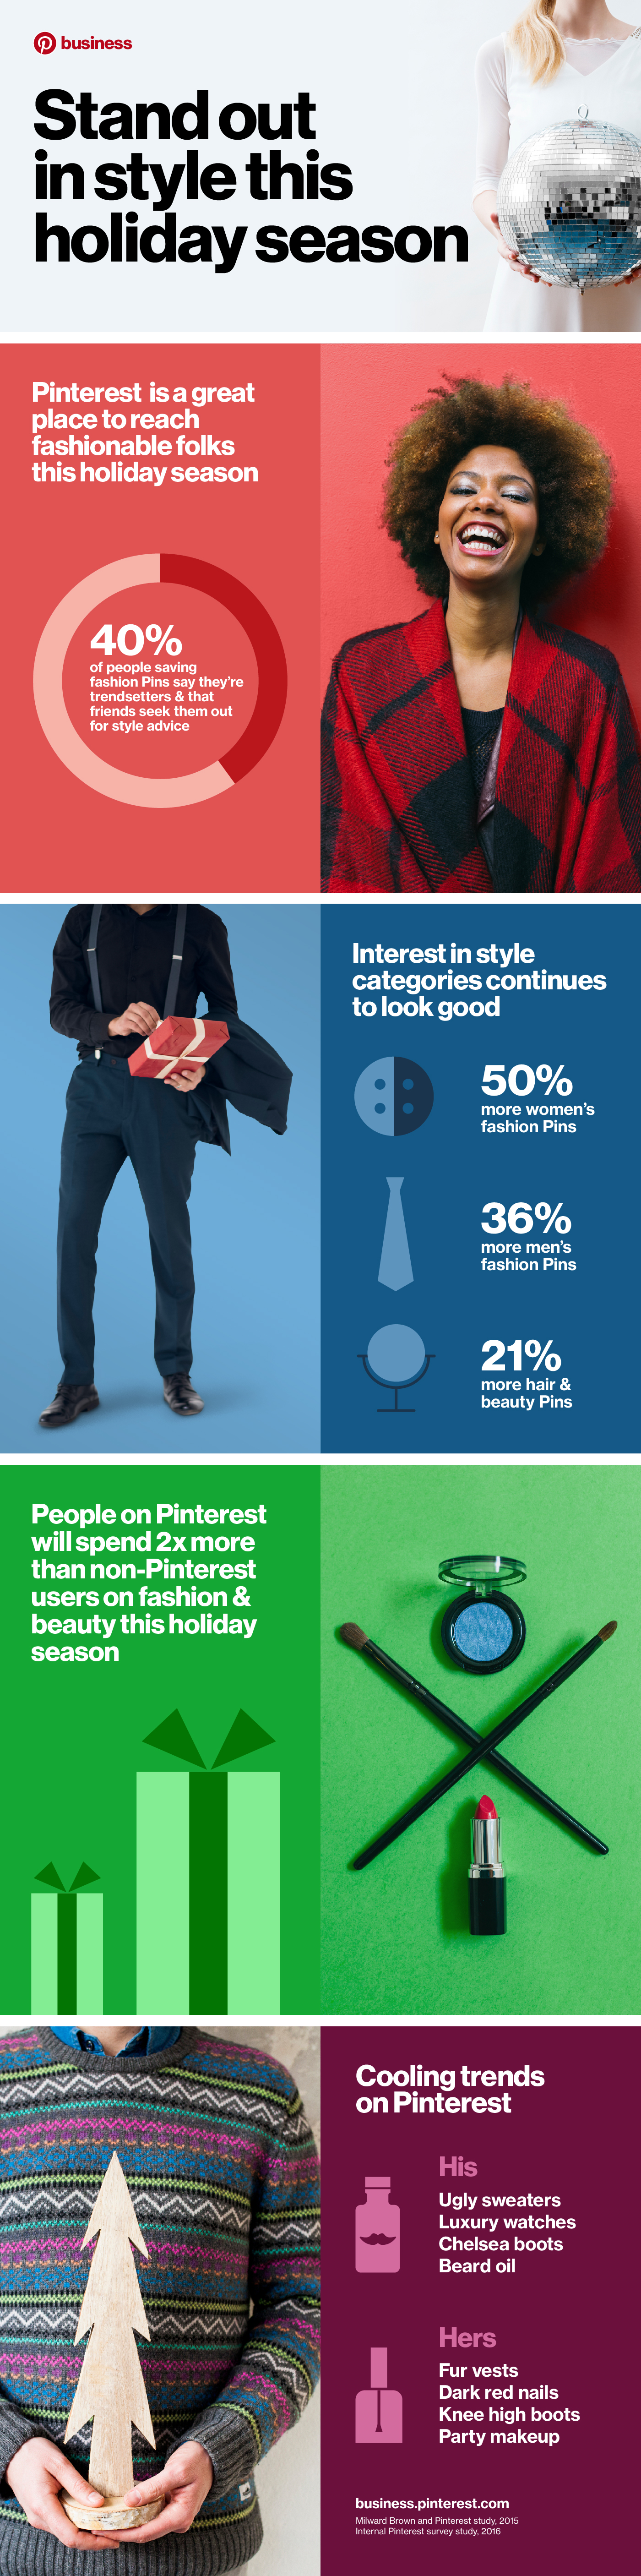 Pinterest Releases New Data on Key Fashion and Beauty Trends for the Holiday Season [Infographic] | Social Media Today